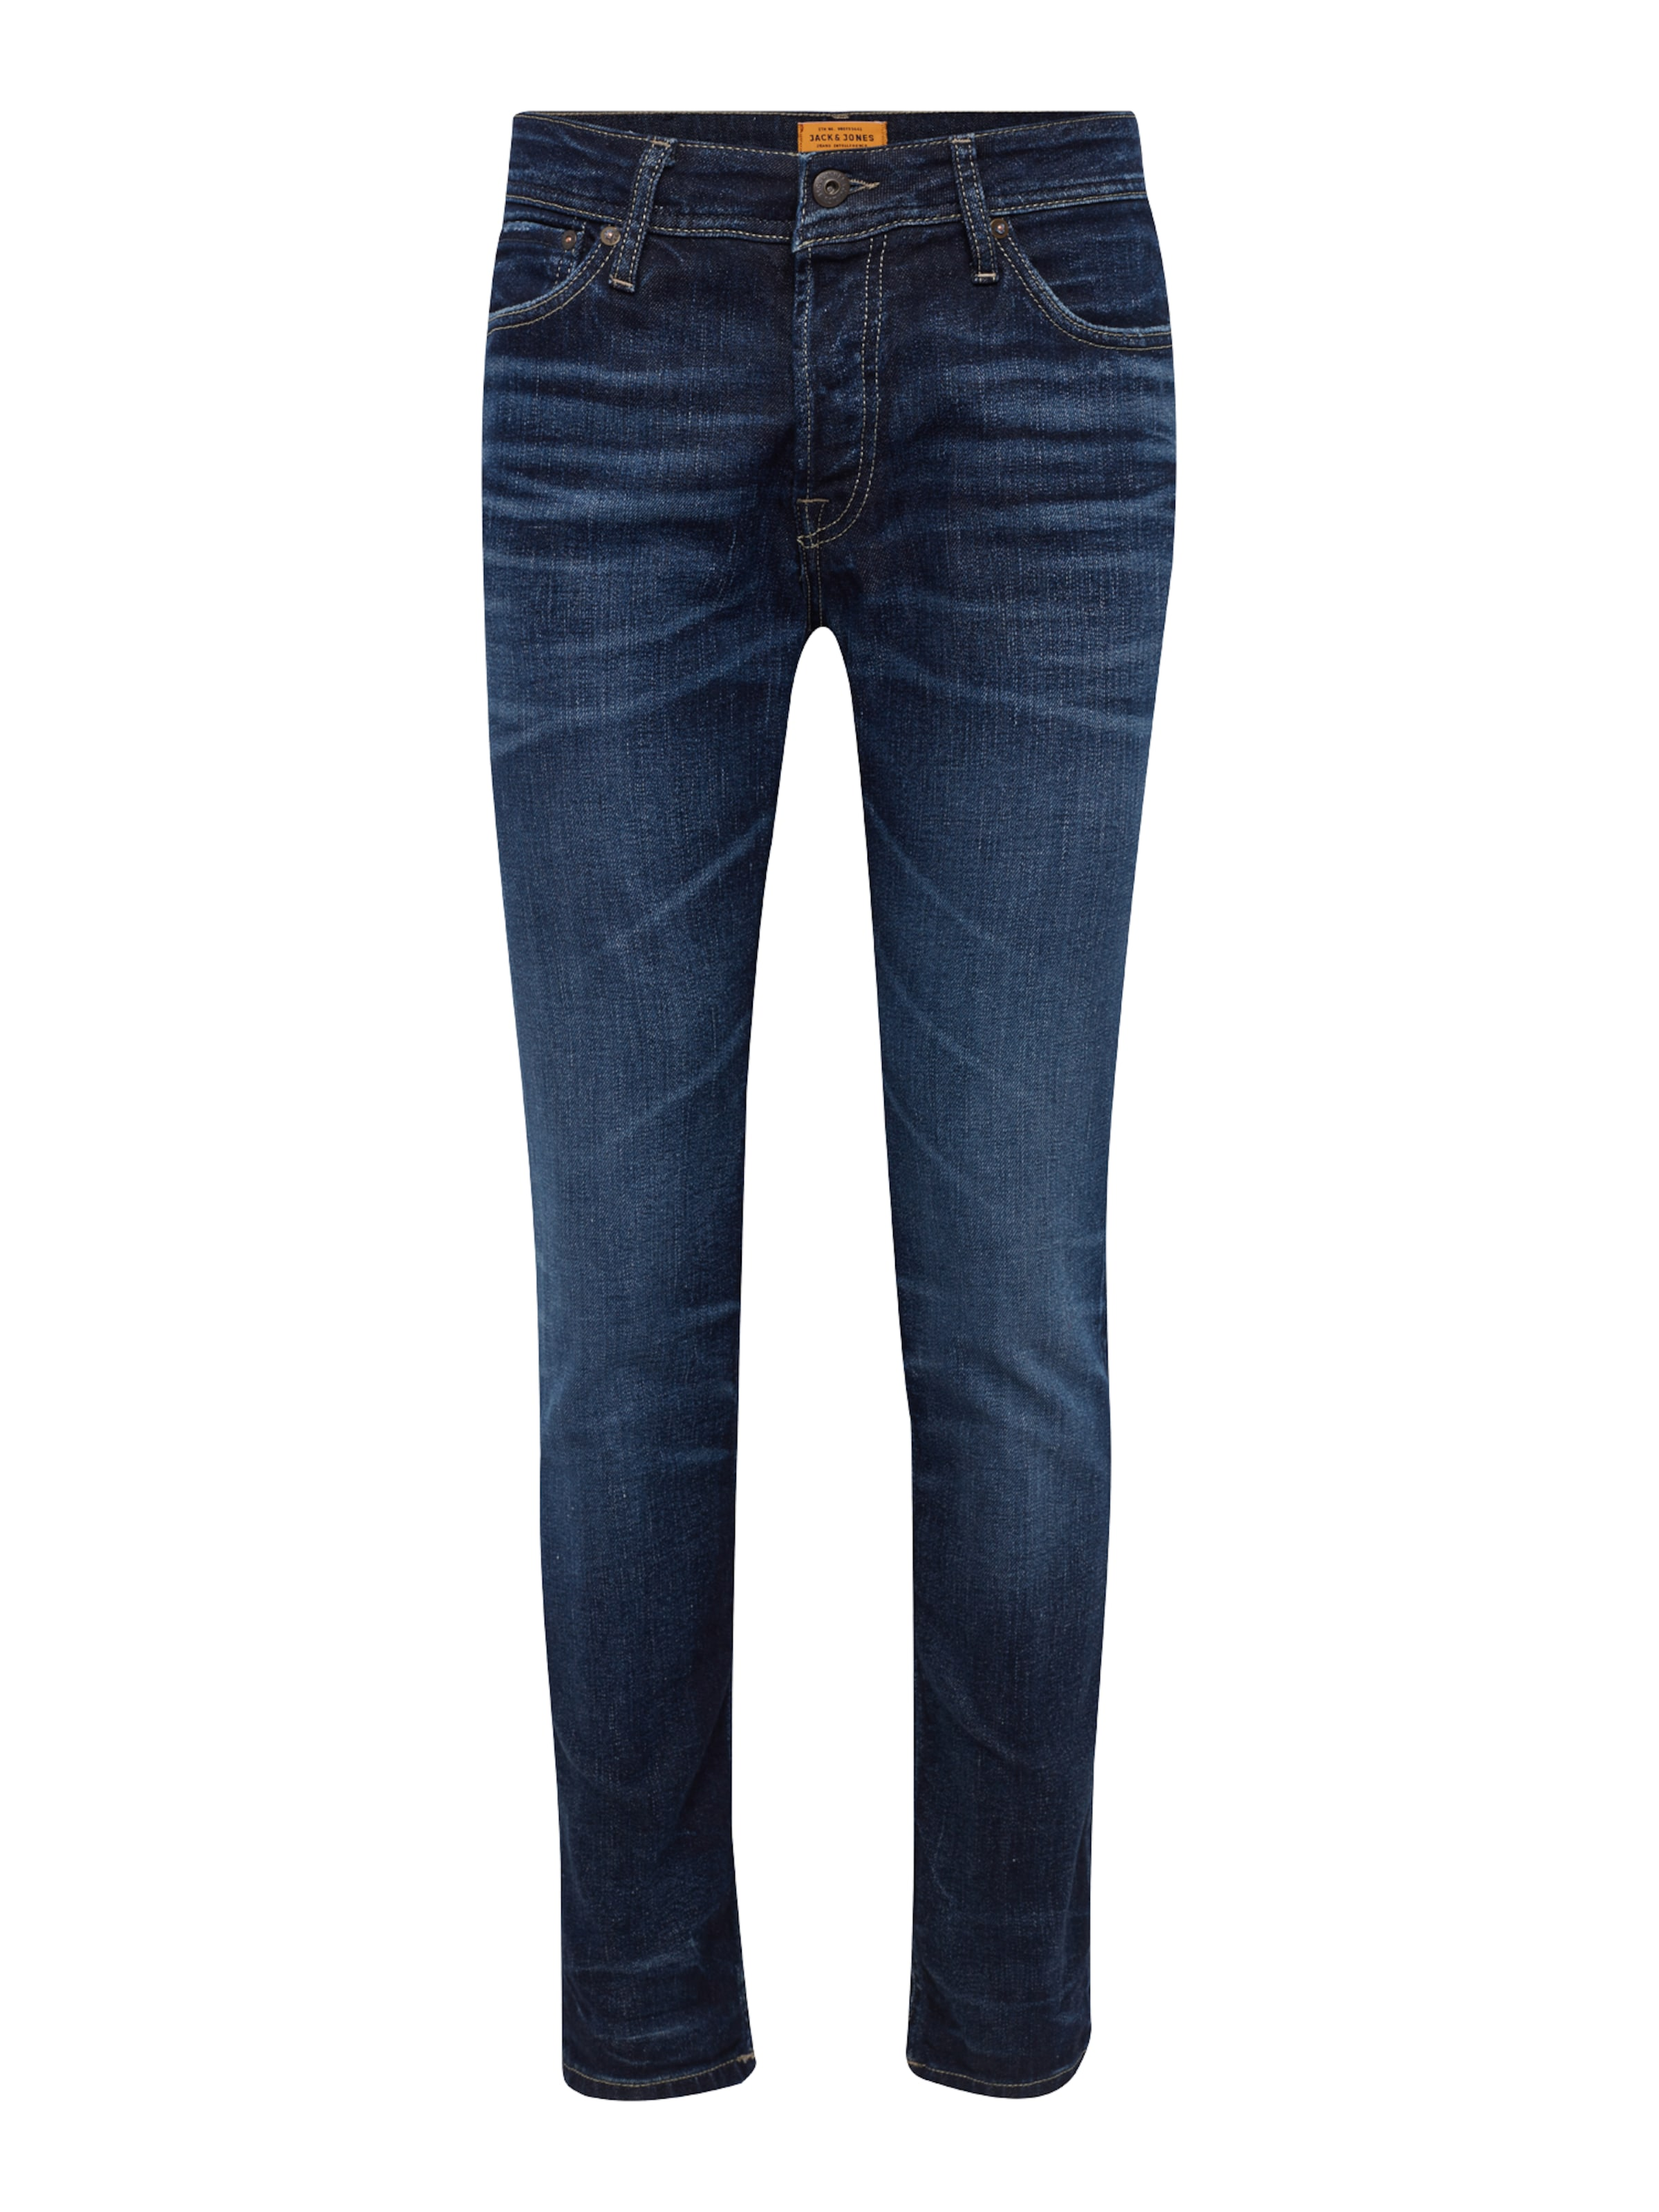 Jj 119 Jjoriginal Blue Denim Jeans In Noos' Jackamp; Jones 'jjitim Lid eCxBdo